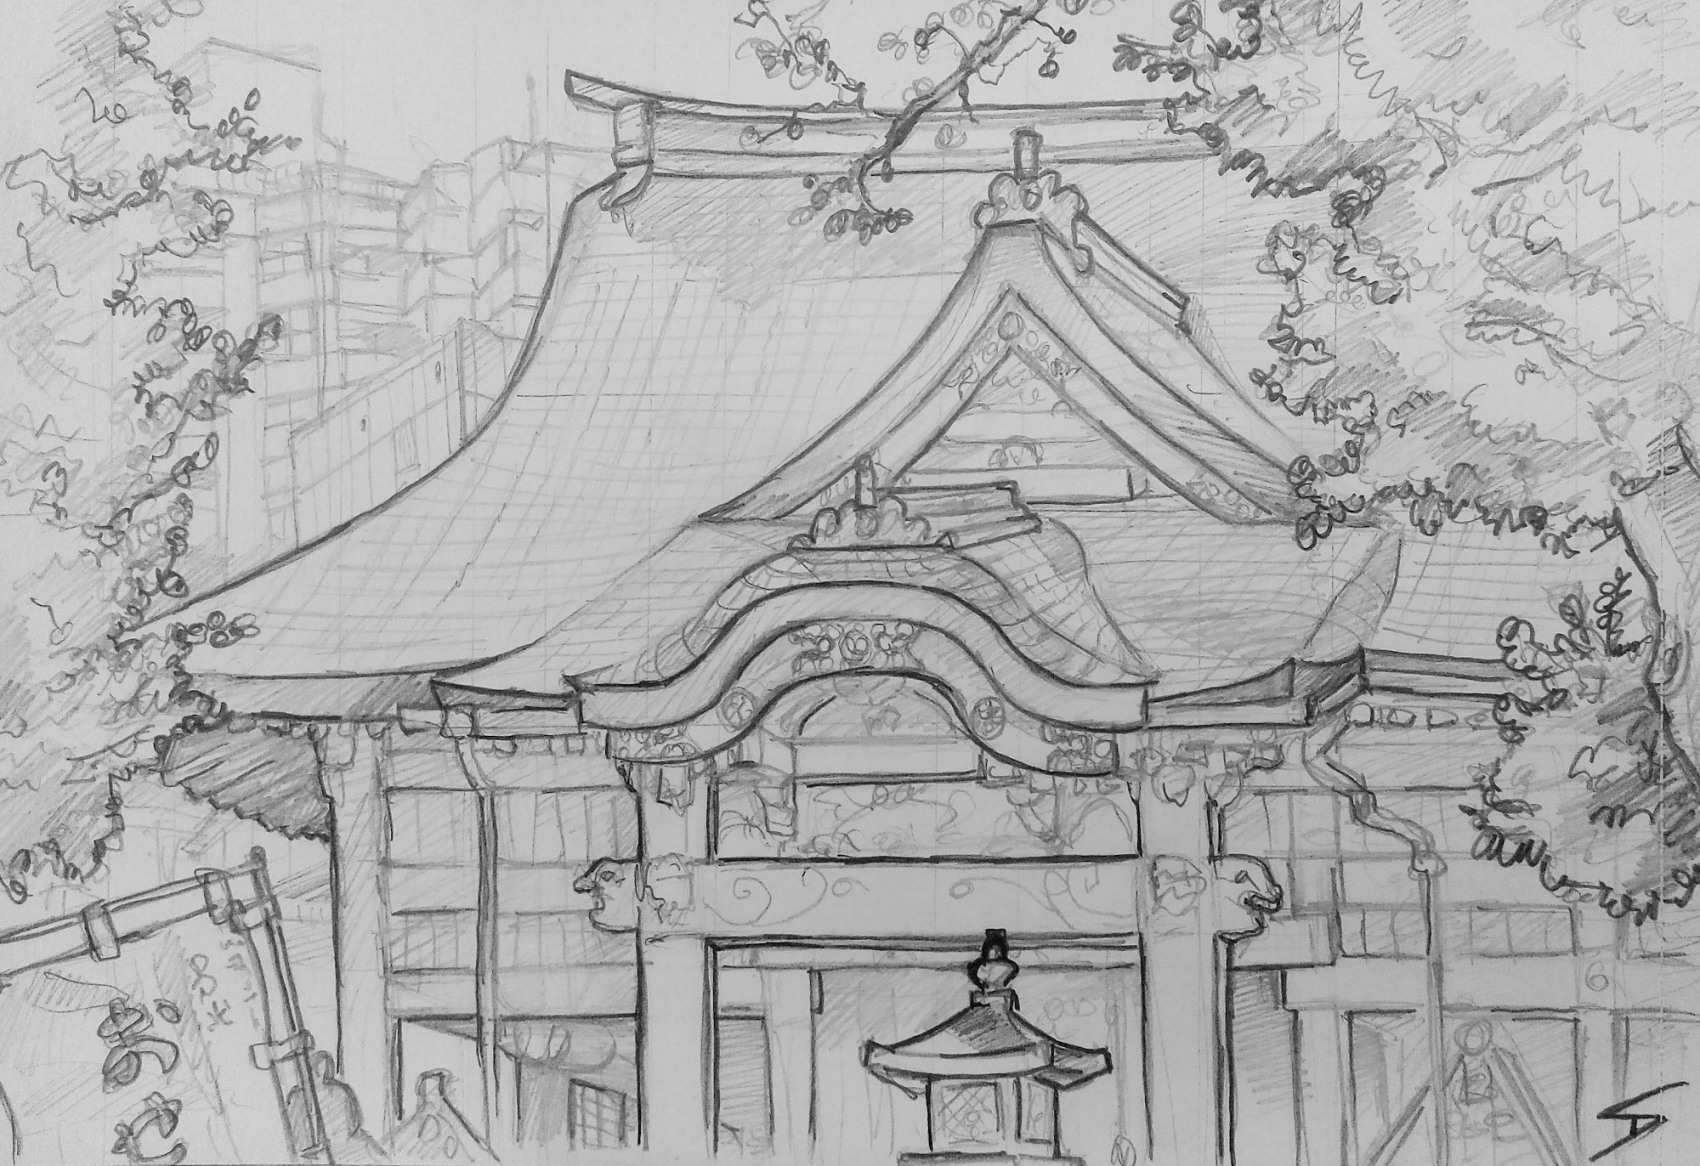 Urban art - Urban photo art - Toshima City, Tokyo, Japan. 'Zoshigaya Kishimoiji Temple.' Dating back to 1561, this shrine (dedicated to the easy delivery and raising of children) was once visited by Shoguns. sketchbookexplorer.com @davidasutton @sketchbookexplorer Facebook.com/davidanthonysutton #japan #osaka #chuoward #osakacastle #travel #travelblog #art #sketching #cheeryblossom #cherryblossomseason